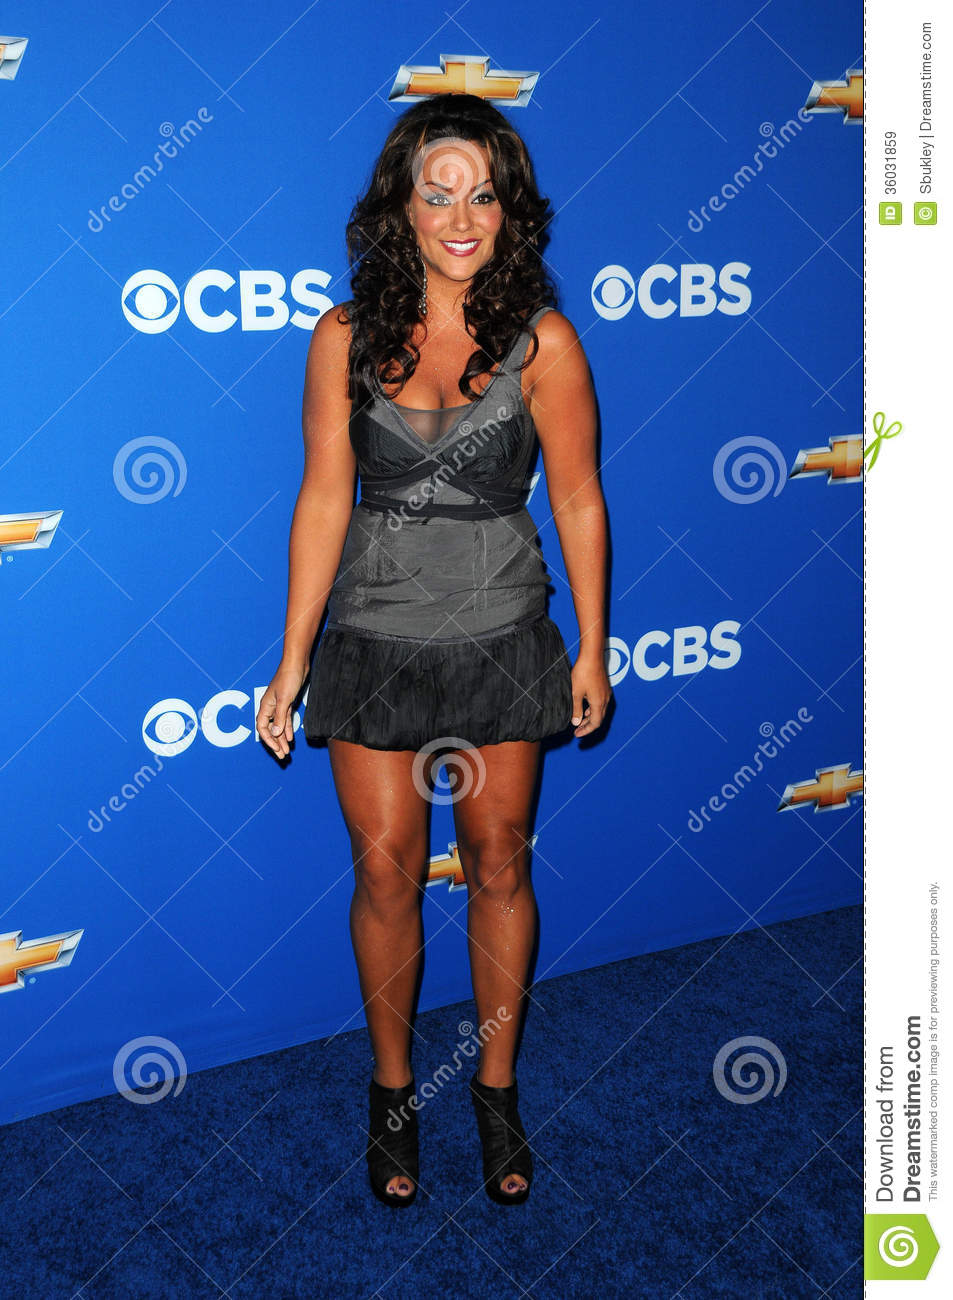 Katy Mixon naked (58 foto and video), Topless, Leaked, Feet, braless 2018